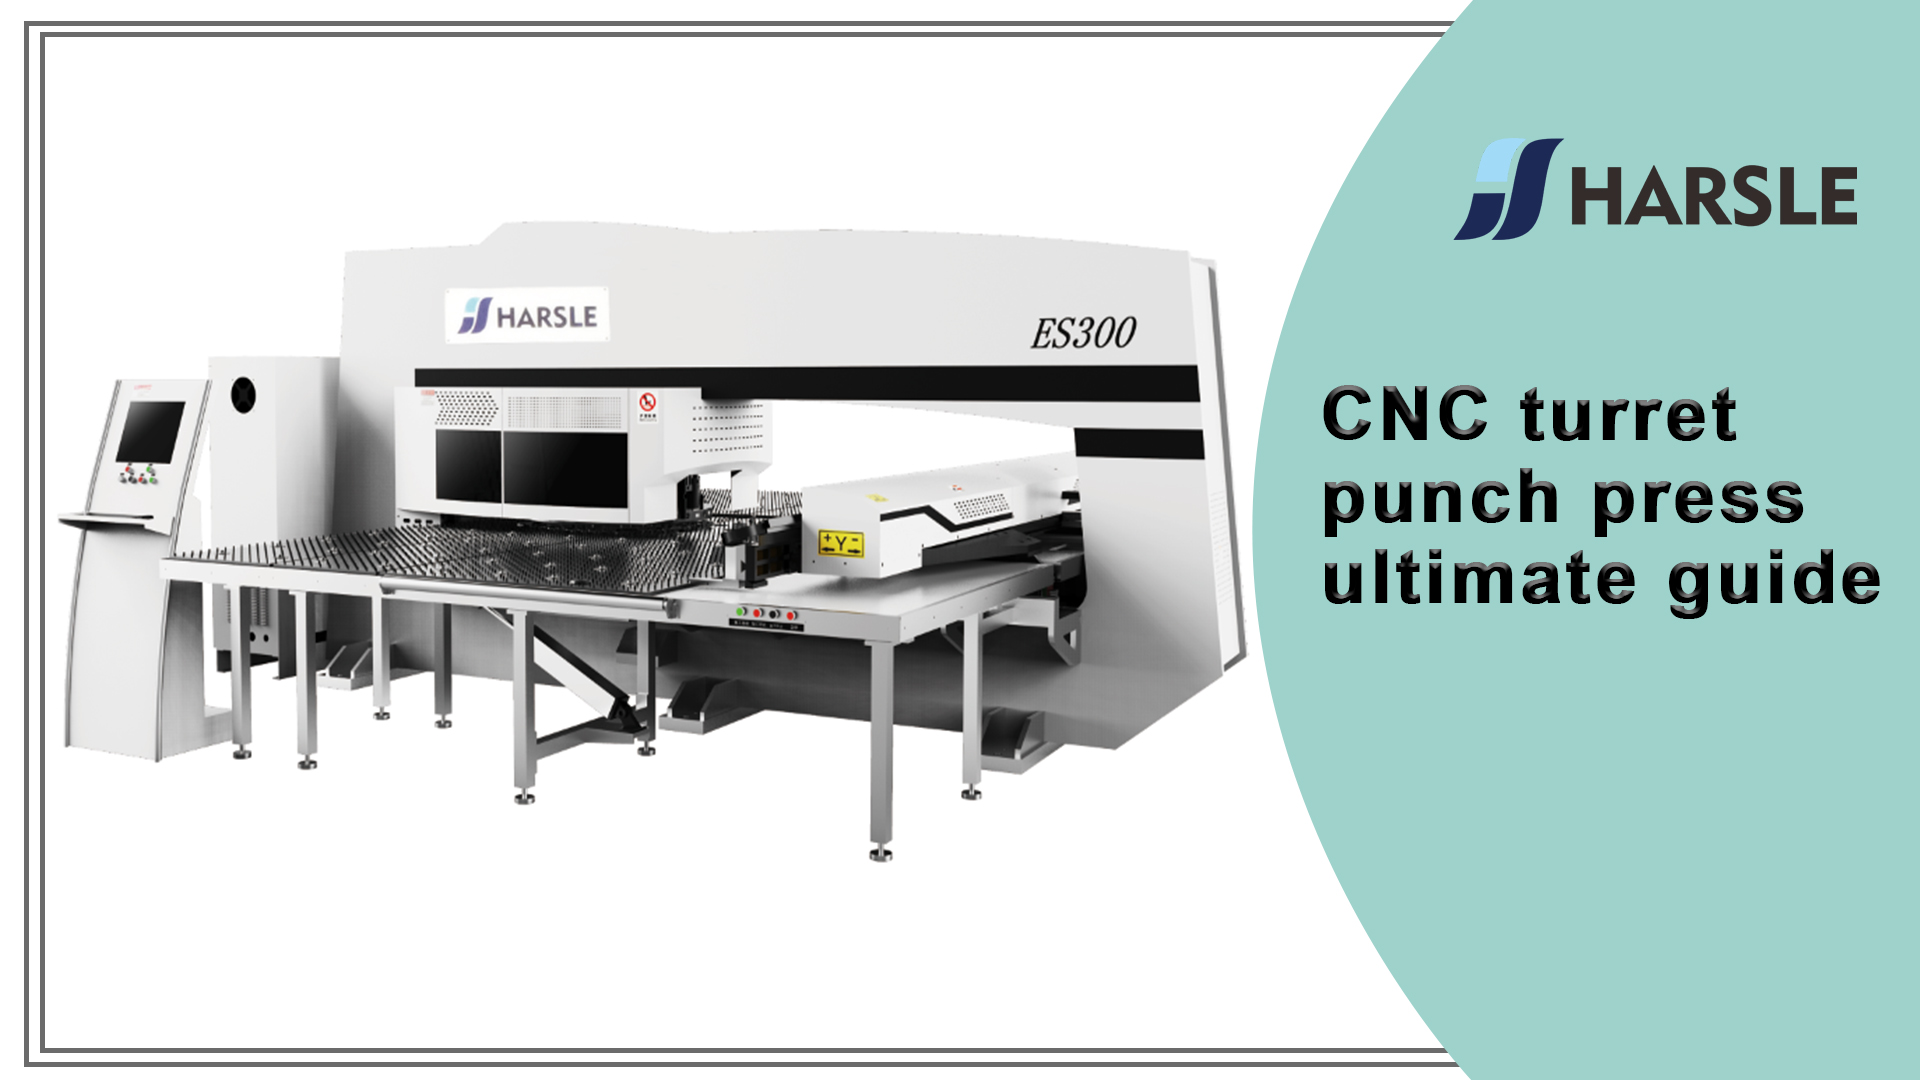 CNC turret punch press ultimate guide